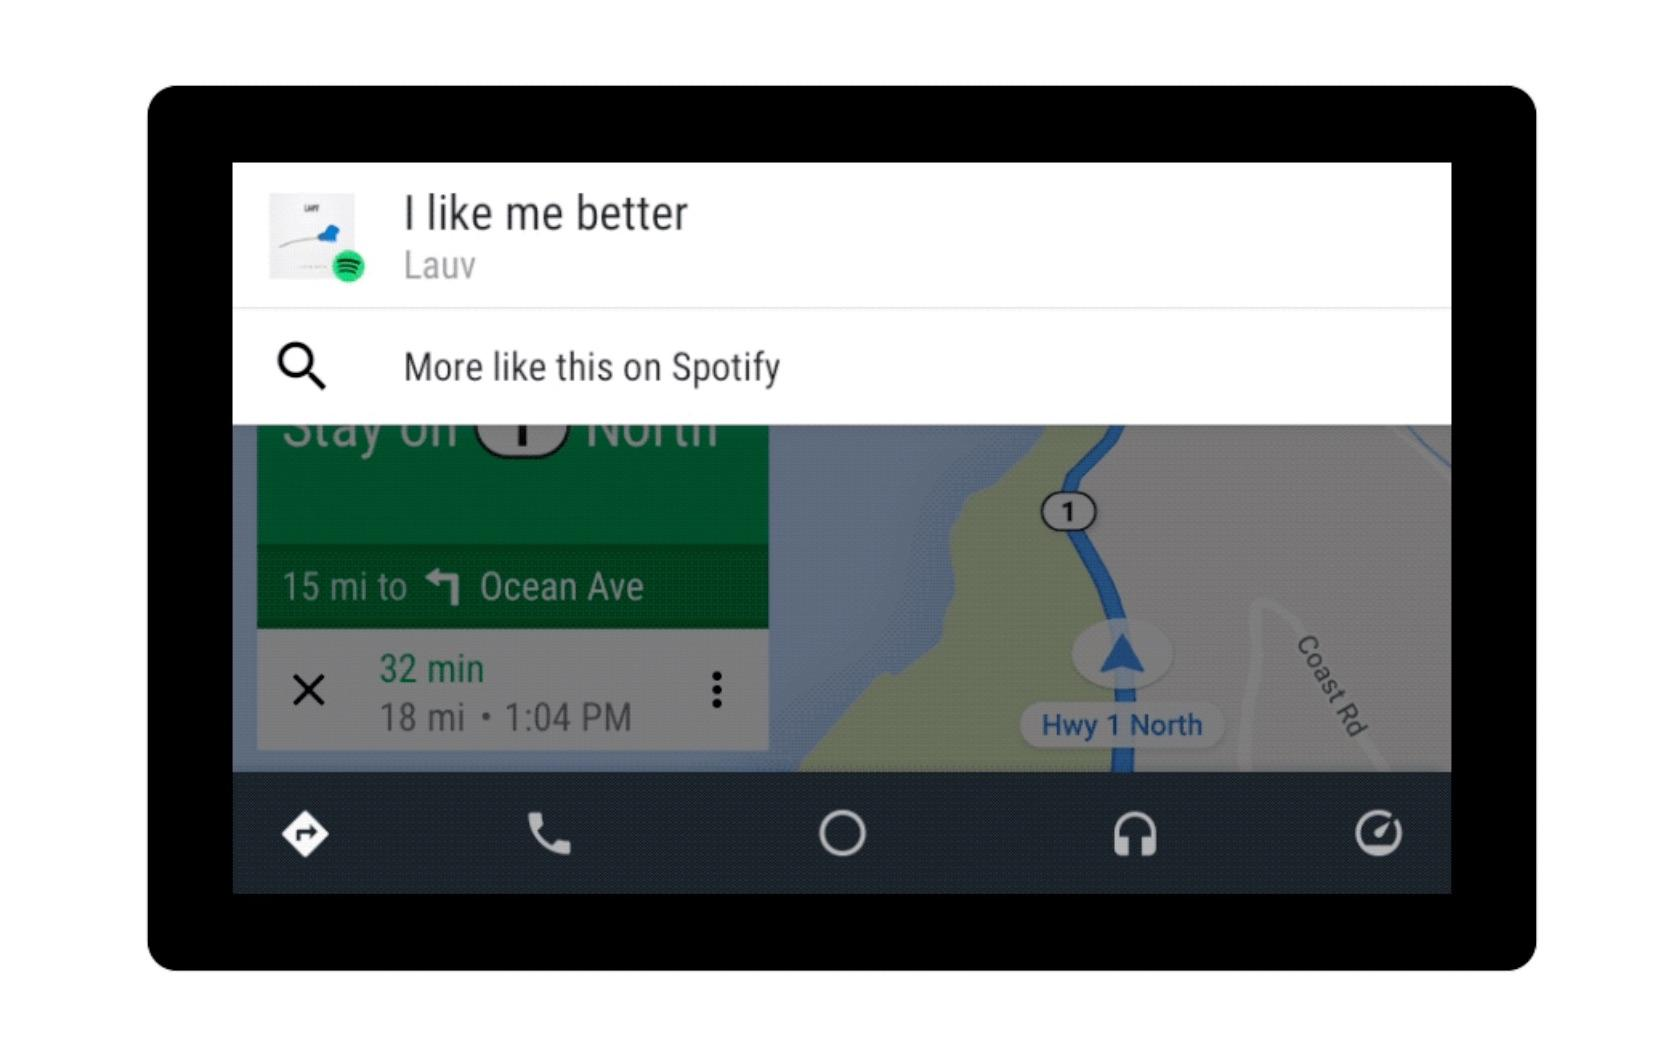 Android Auto is getting a slick new interface - SlashGear